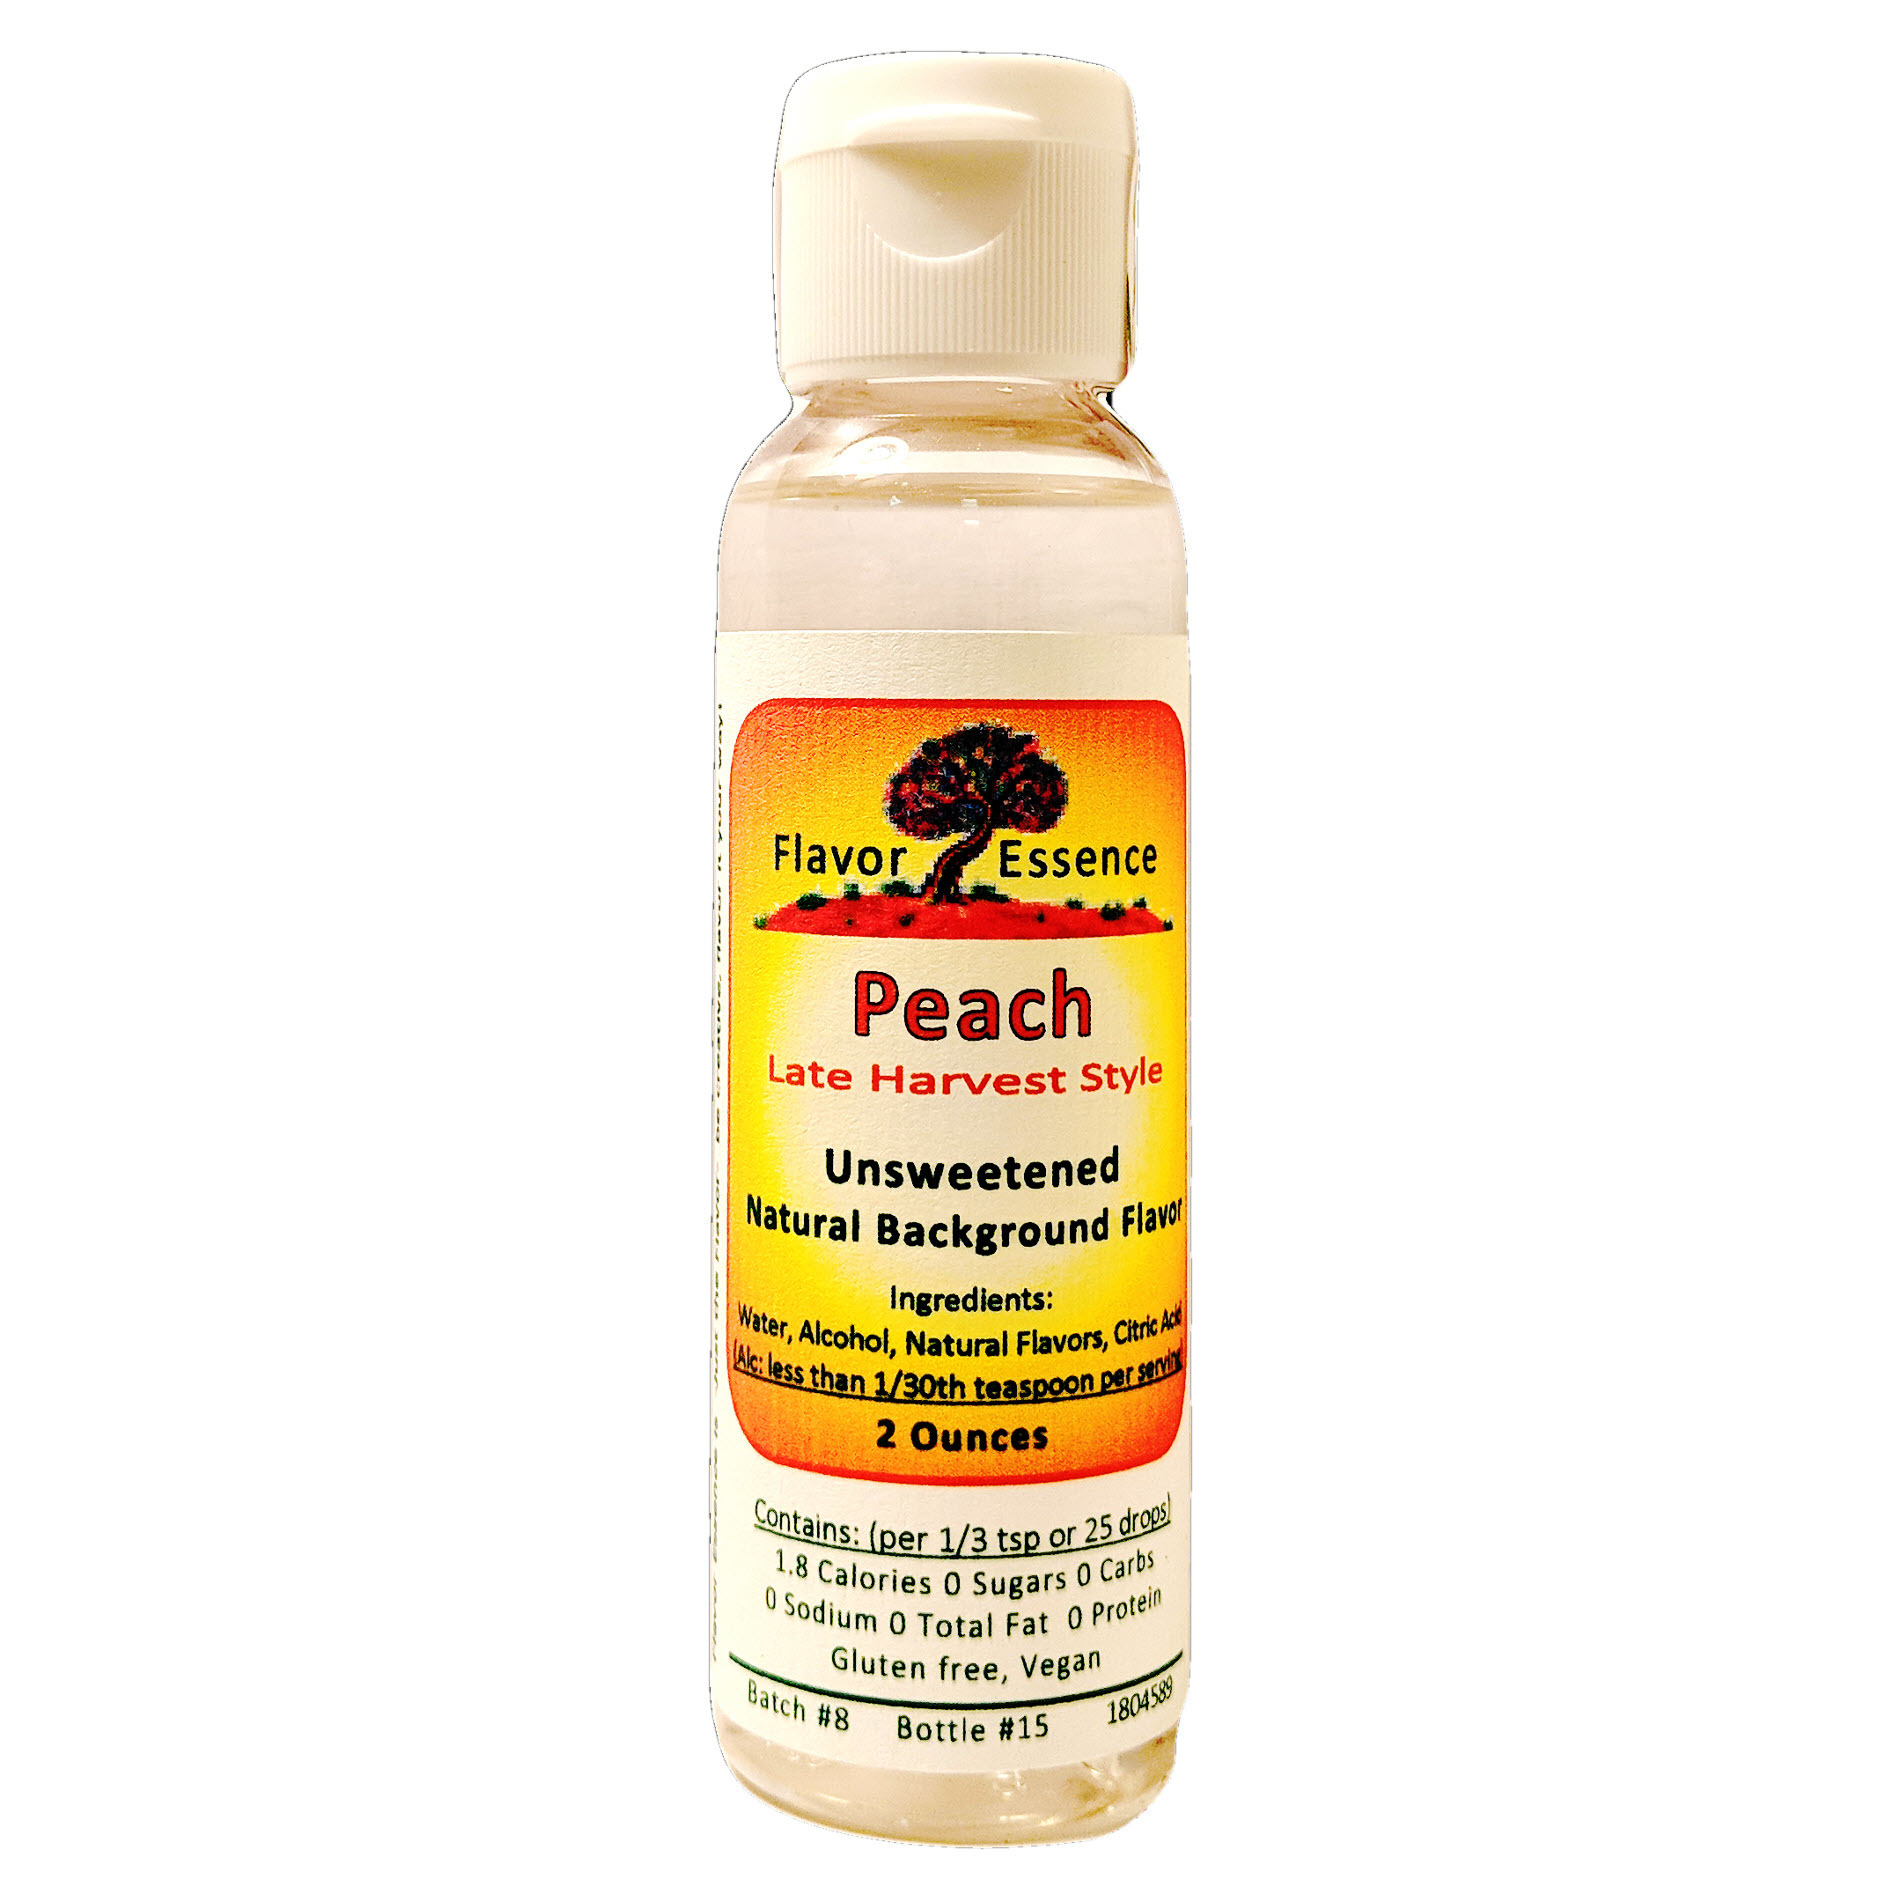 PEACH (Late Harvest Style) Unsweetened Natural Flavoring PCH-